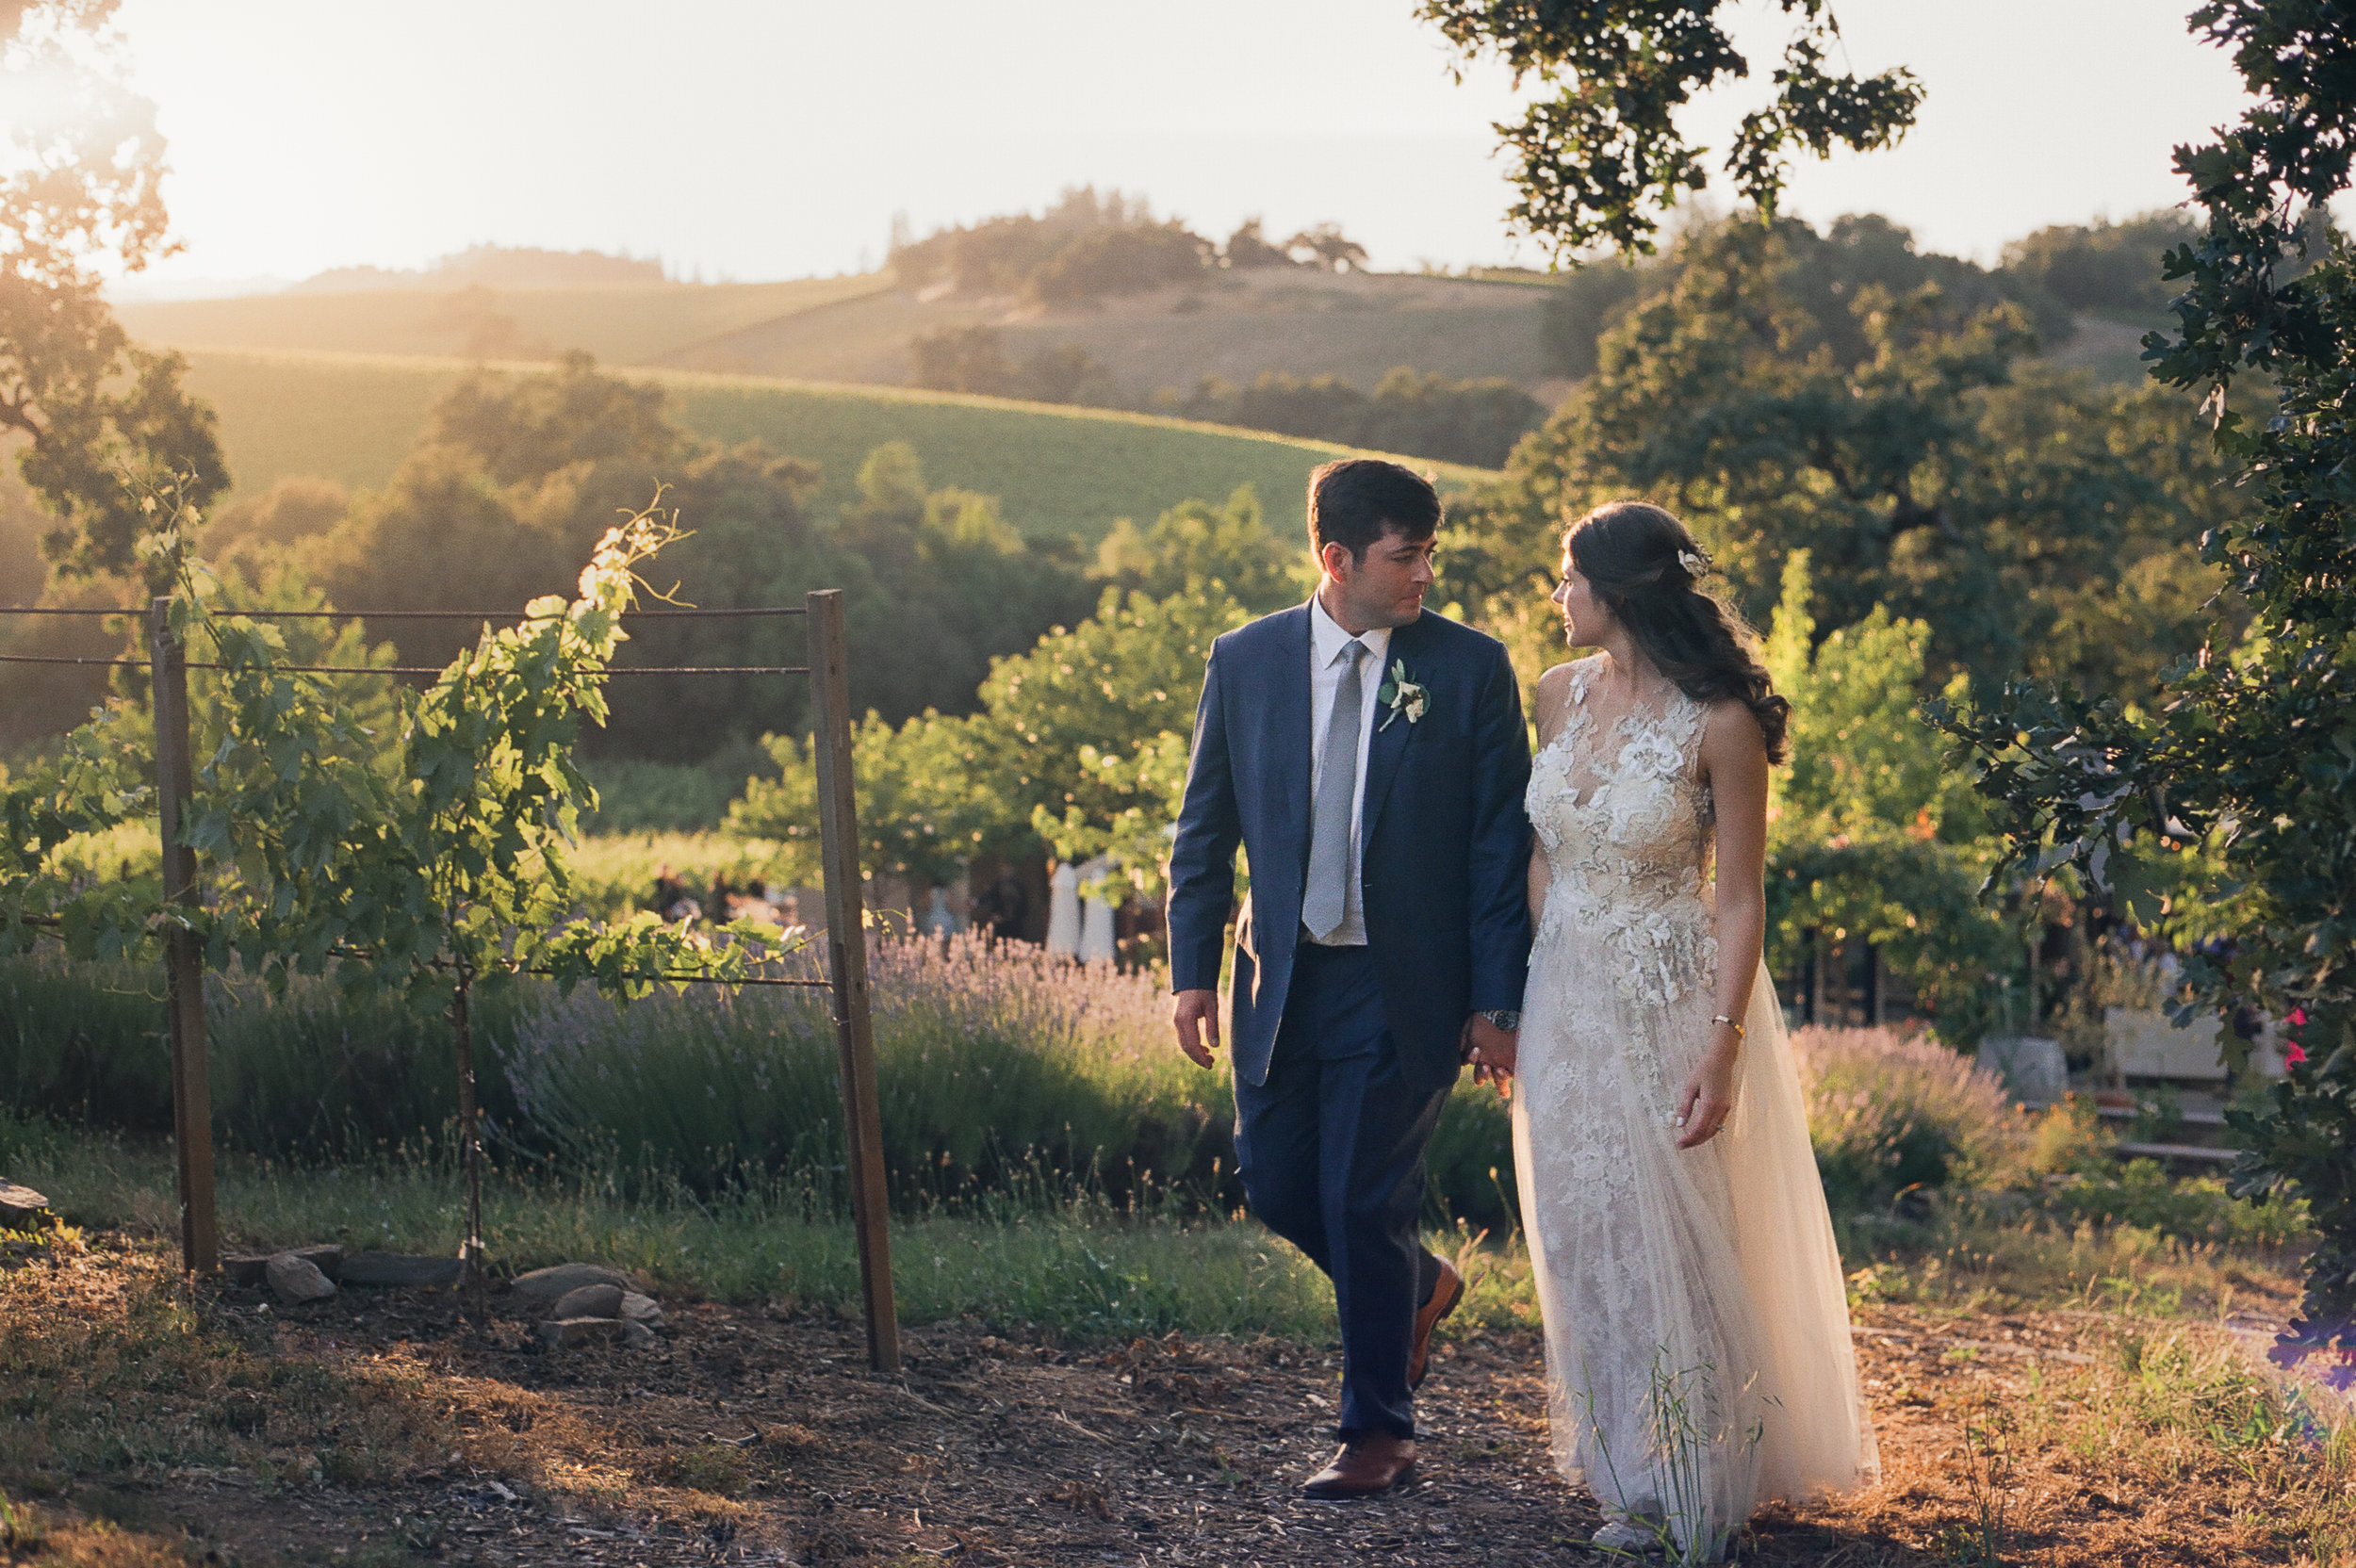 kirby-gladstein-photography-napa-valley-wedding-2017-17